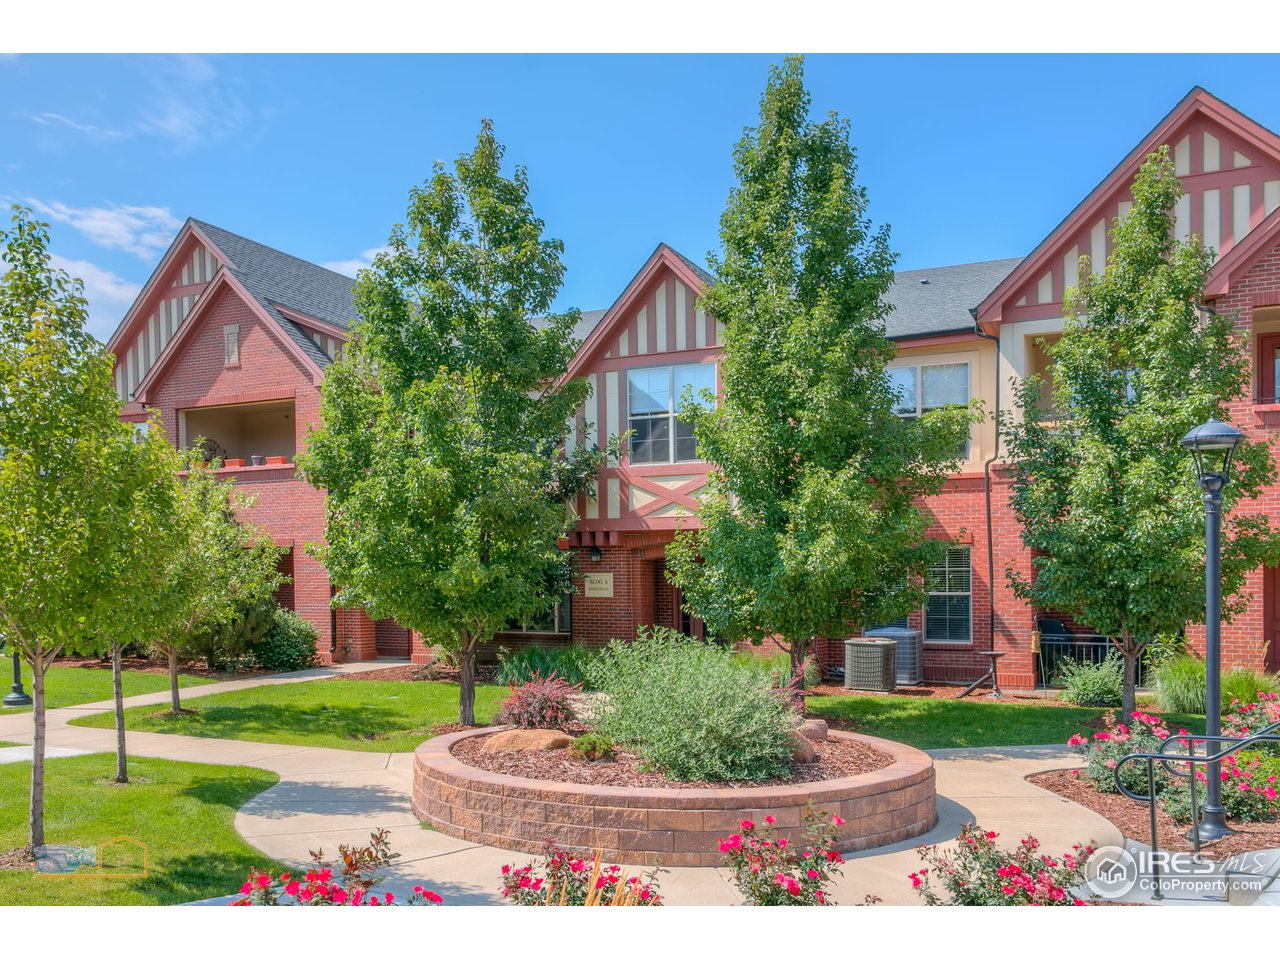 1379 Charles Dr A-4, Longmont CO 80503